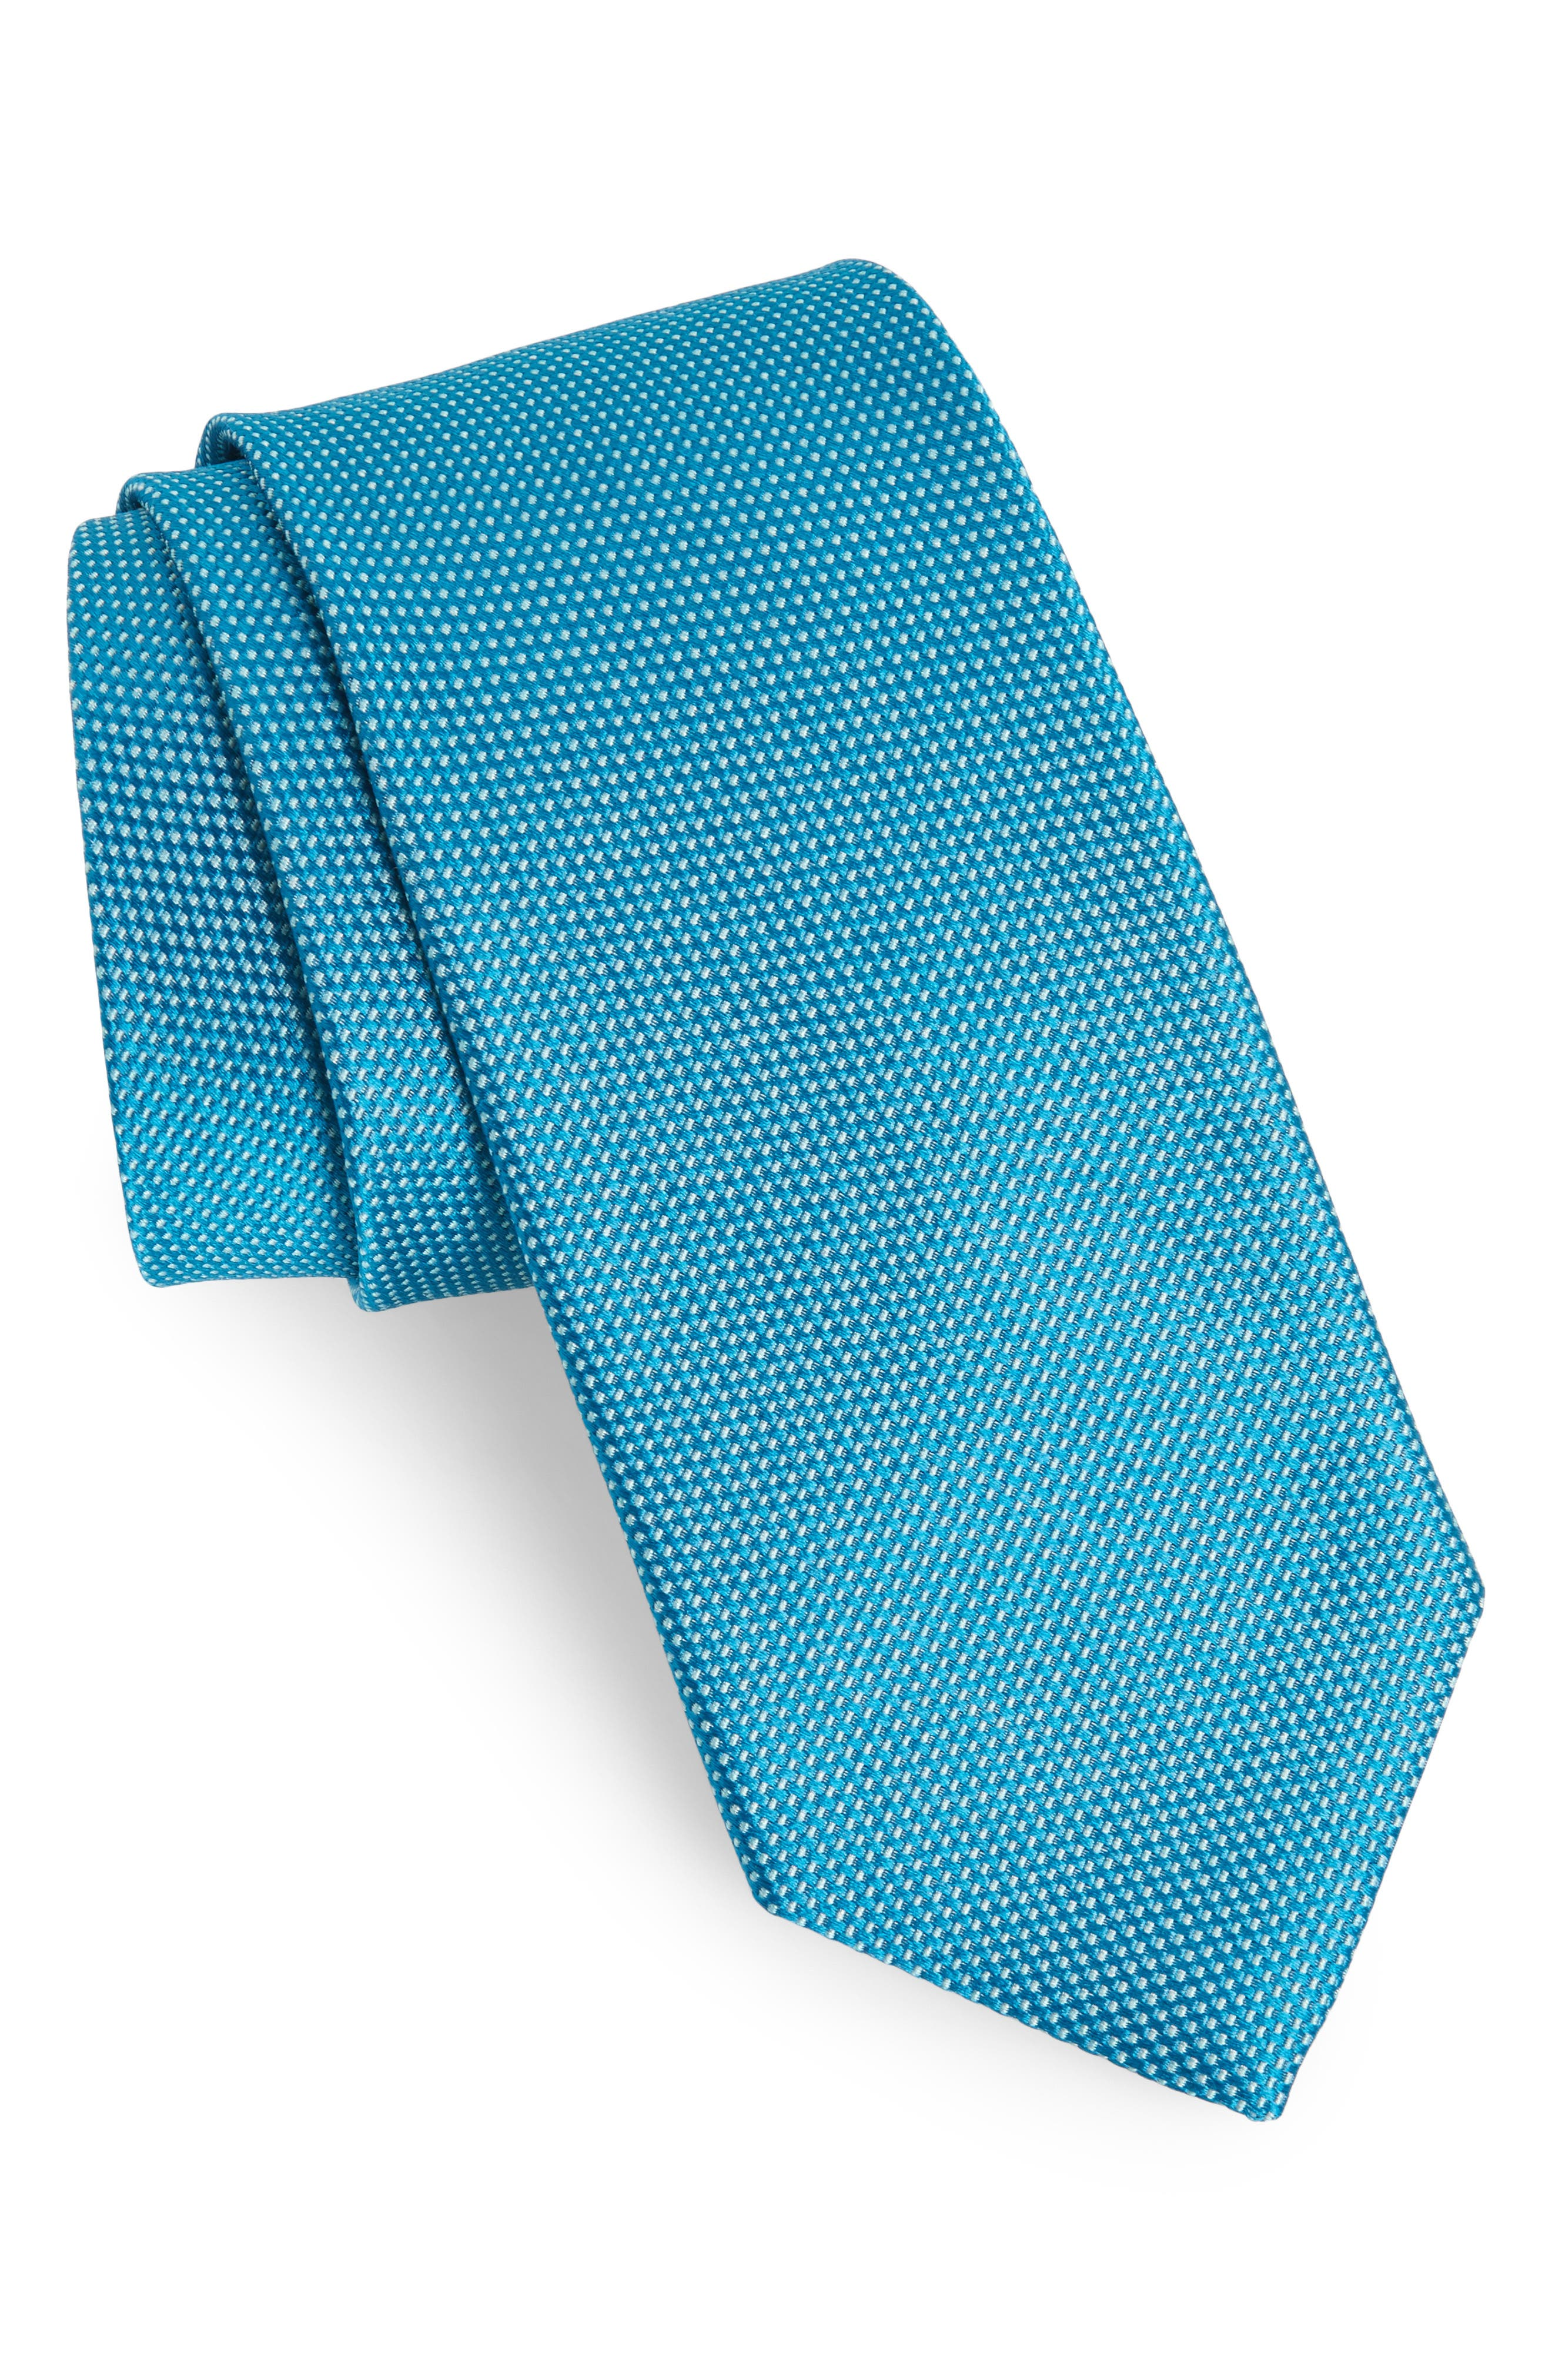 Solid Silk Tie,                             Main thumbnail 1, color,                             400